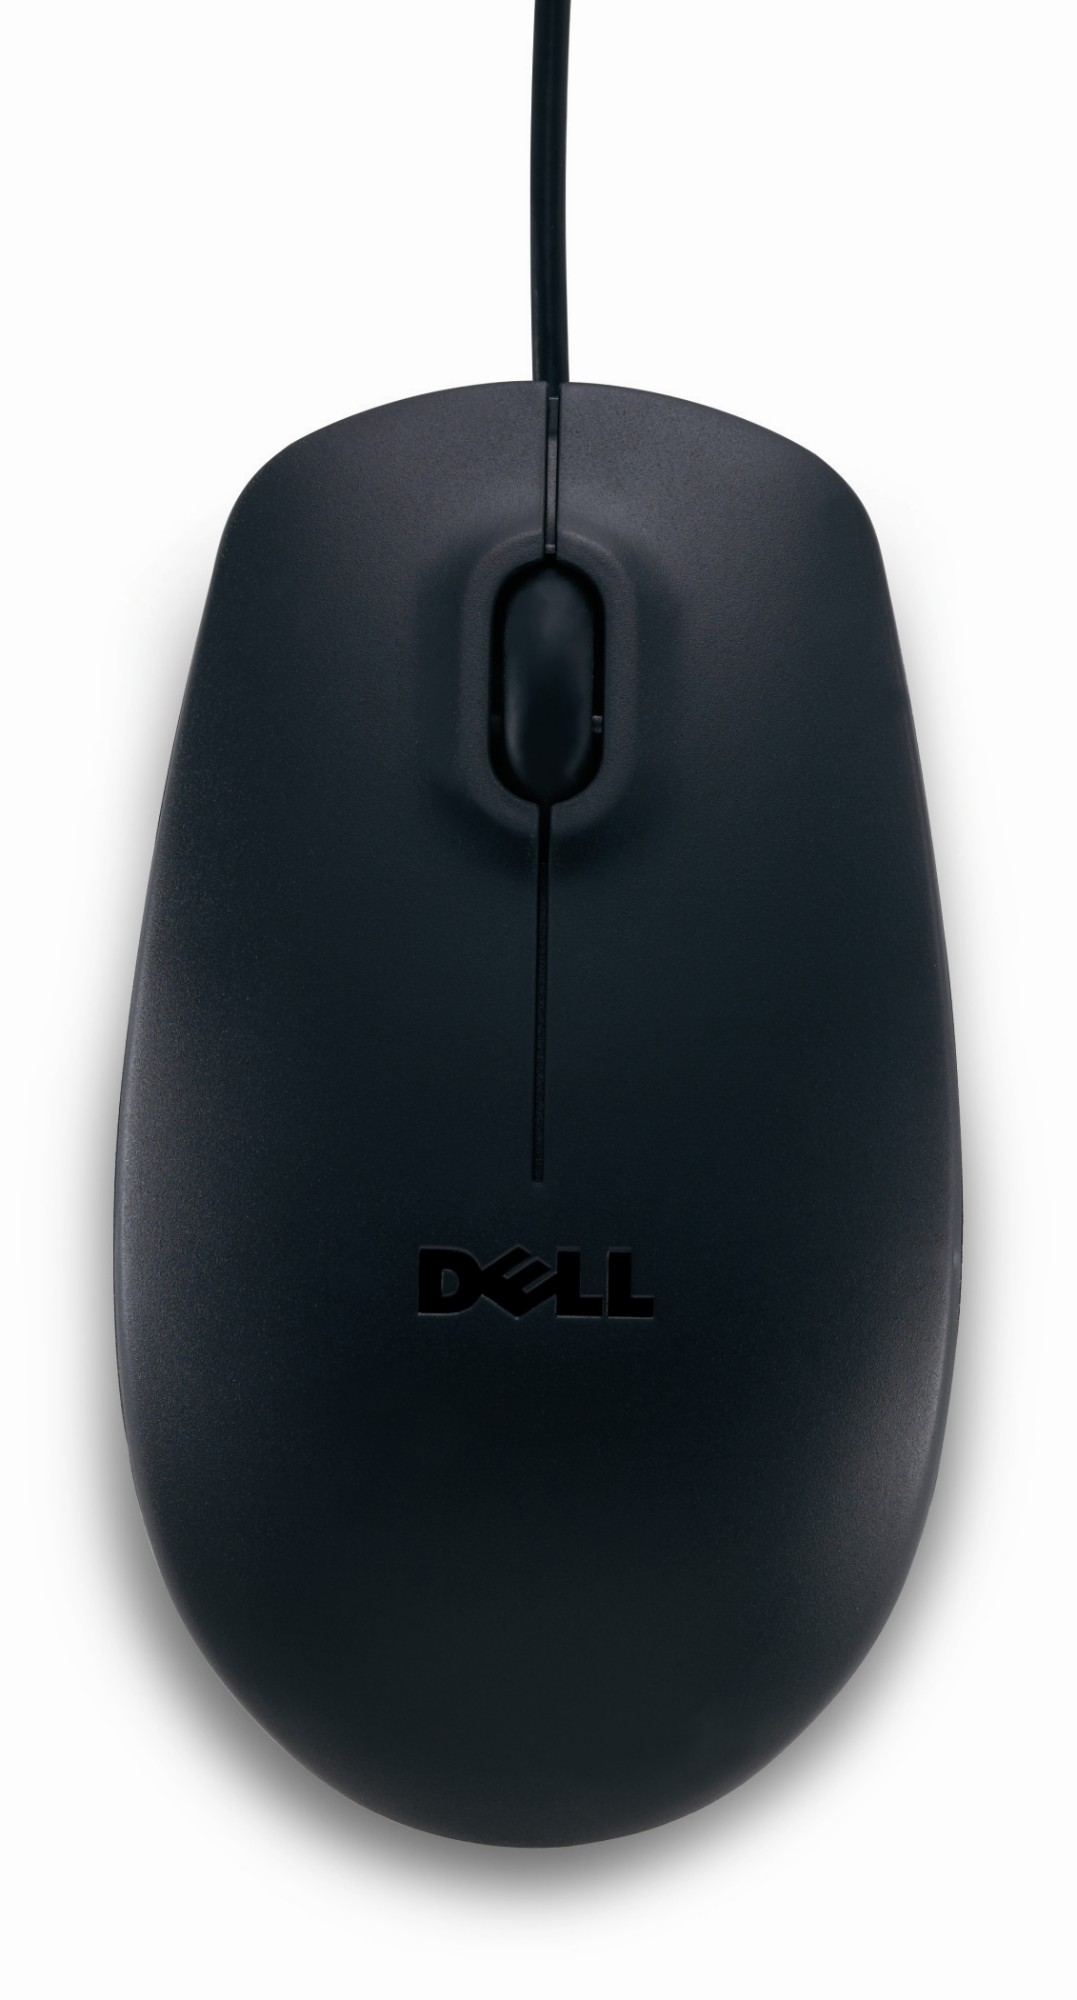 Dell Mouse Diagram Download Wiring Diagrams Usb Not Working Images Writing Sample Bluetooth Wireless Circuit